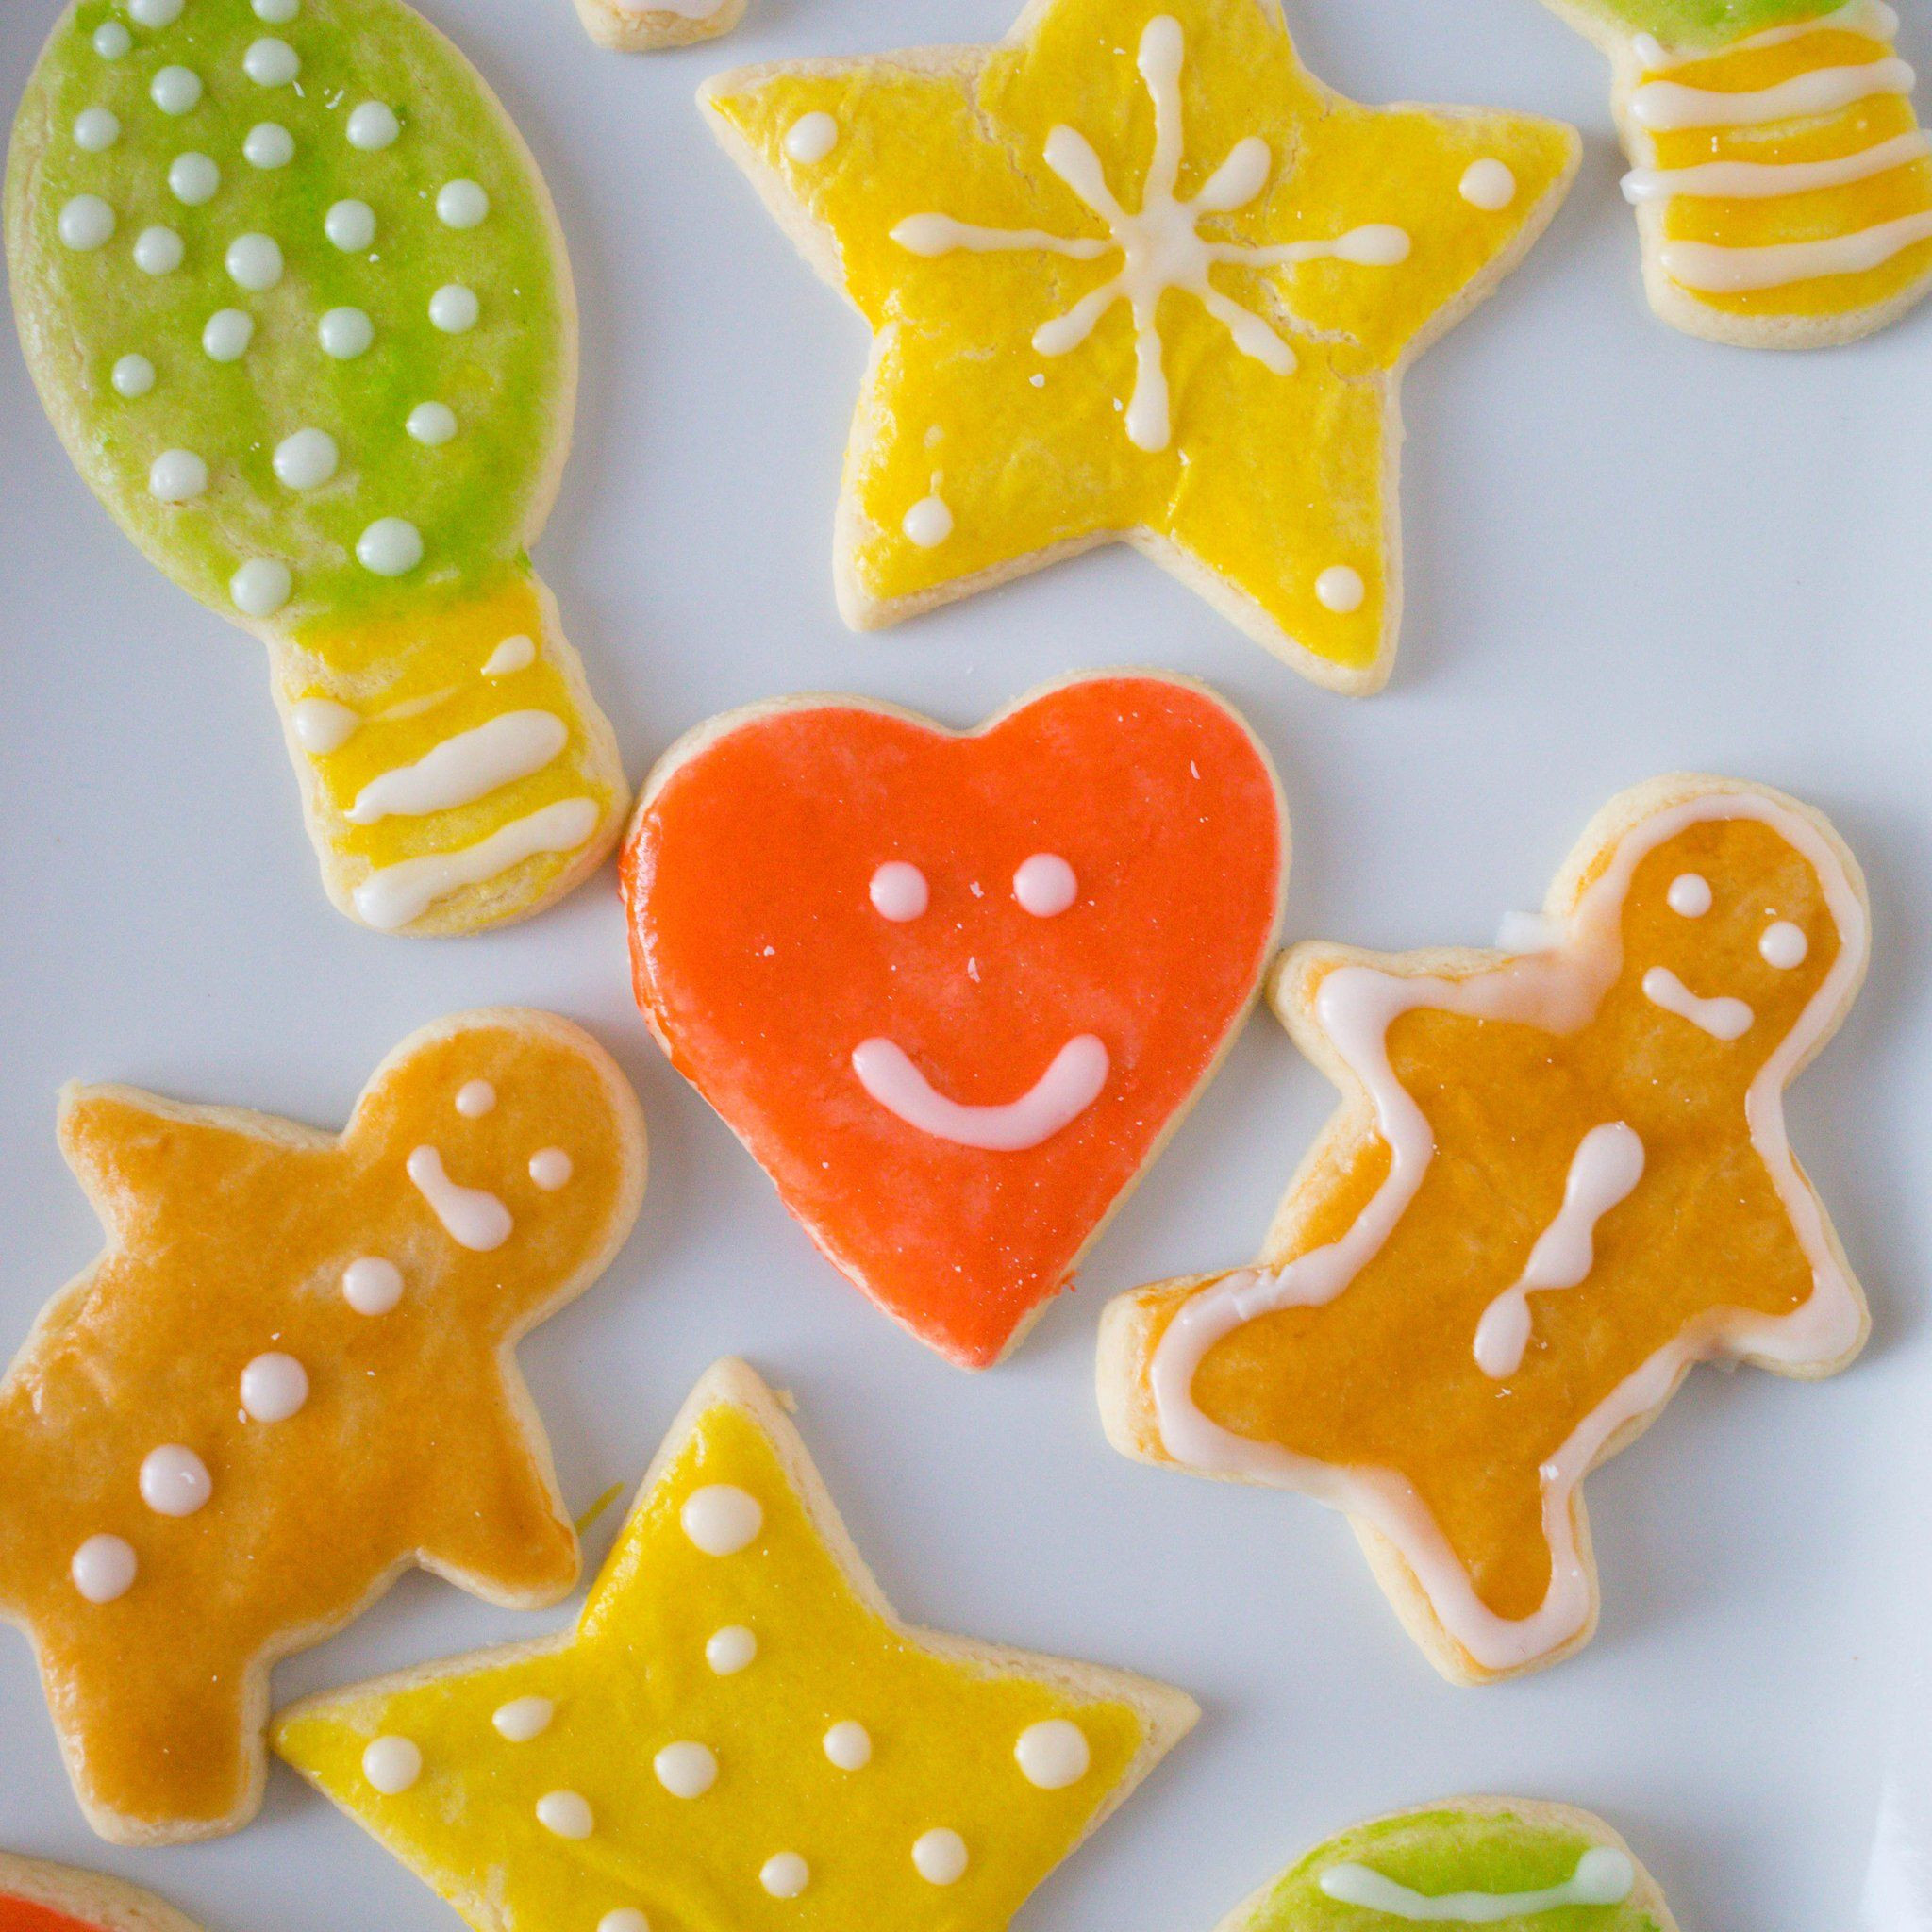 Ree Drummond Christmas Cookies  Ree Drummond s Christmas Cookies Are Almost Too Cute to Eat